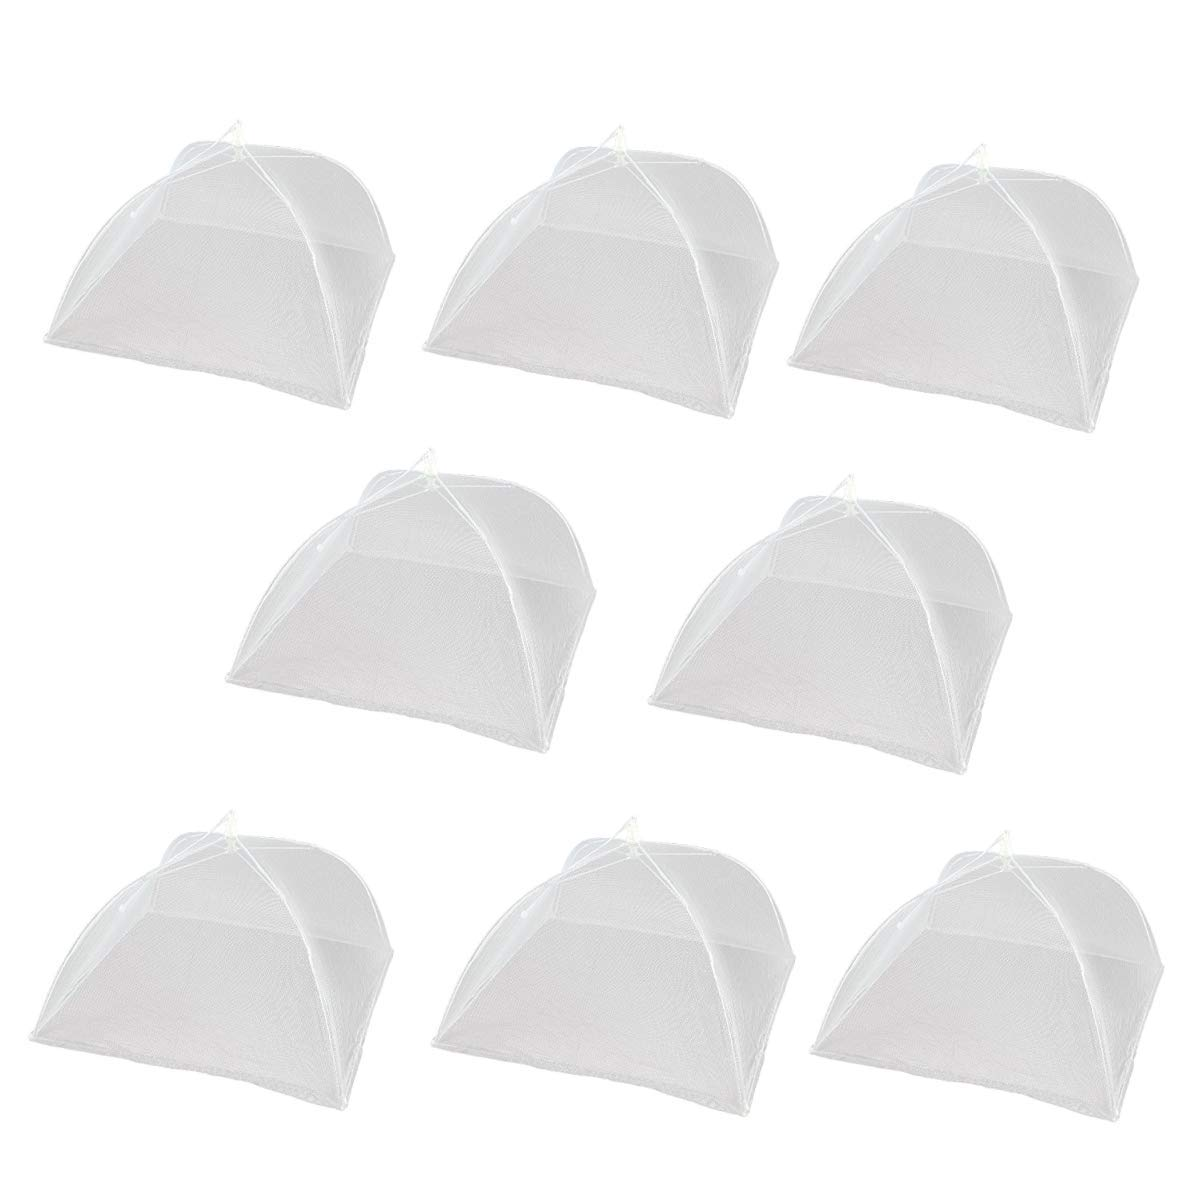 EVINIS Large White Pop Up Mesh Screen Food Cover - Keep Out Flies, Bugs, Mosquitos - Reusable and Collapsible (Pack of 8)